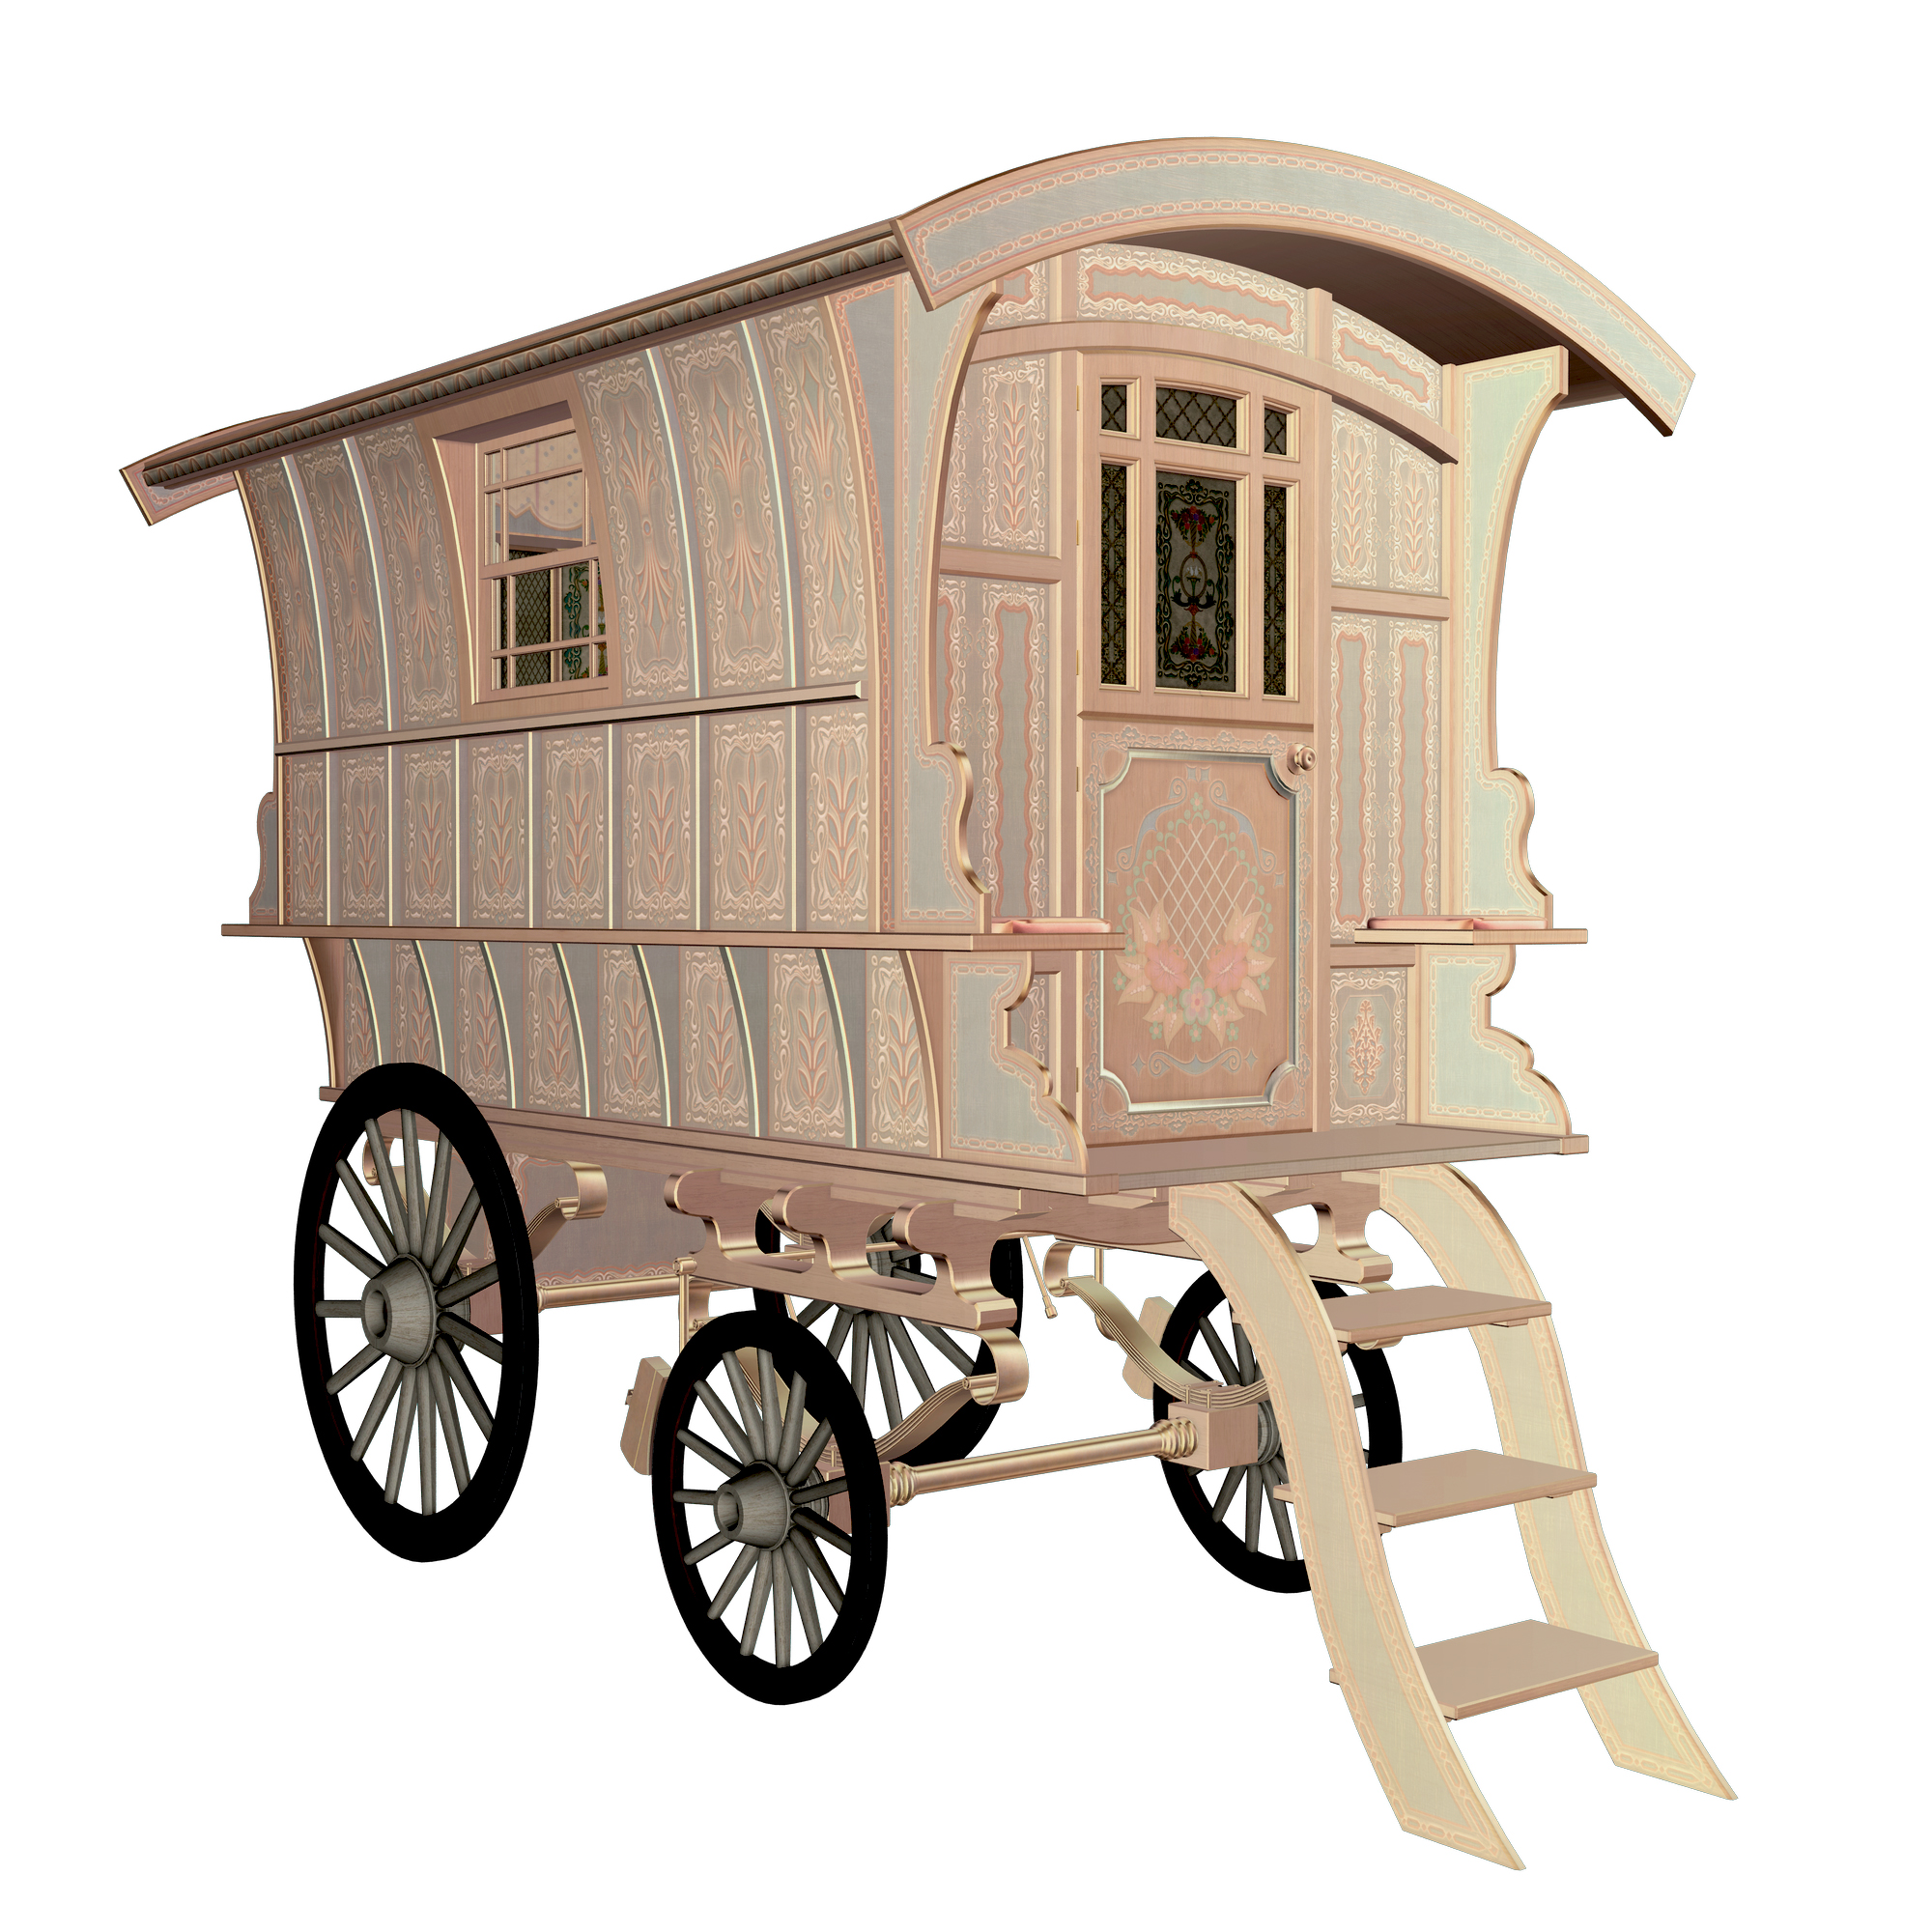 Gypsy Wagon 1 by markopolio-stock on DeviantArt